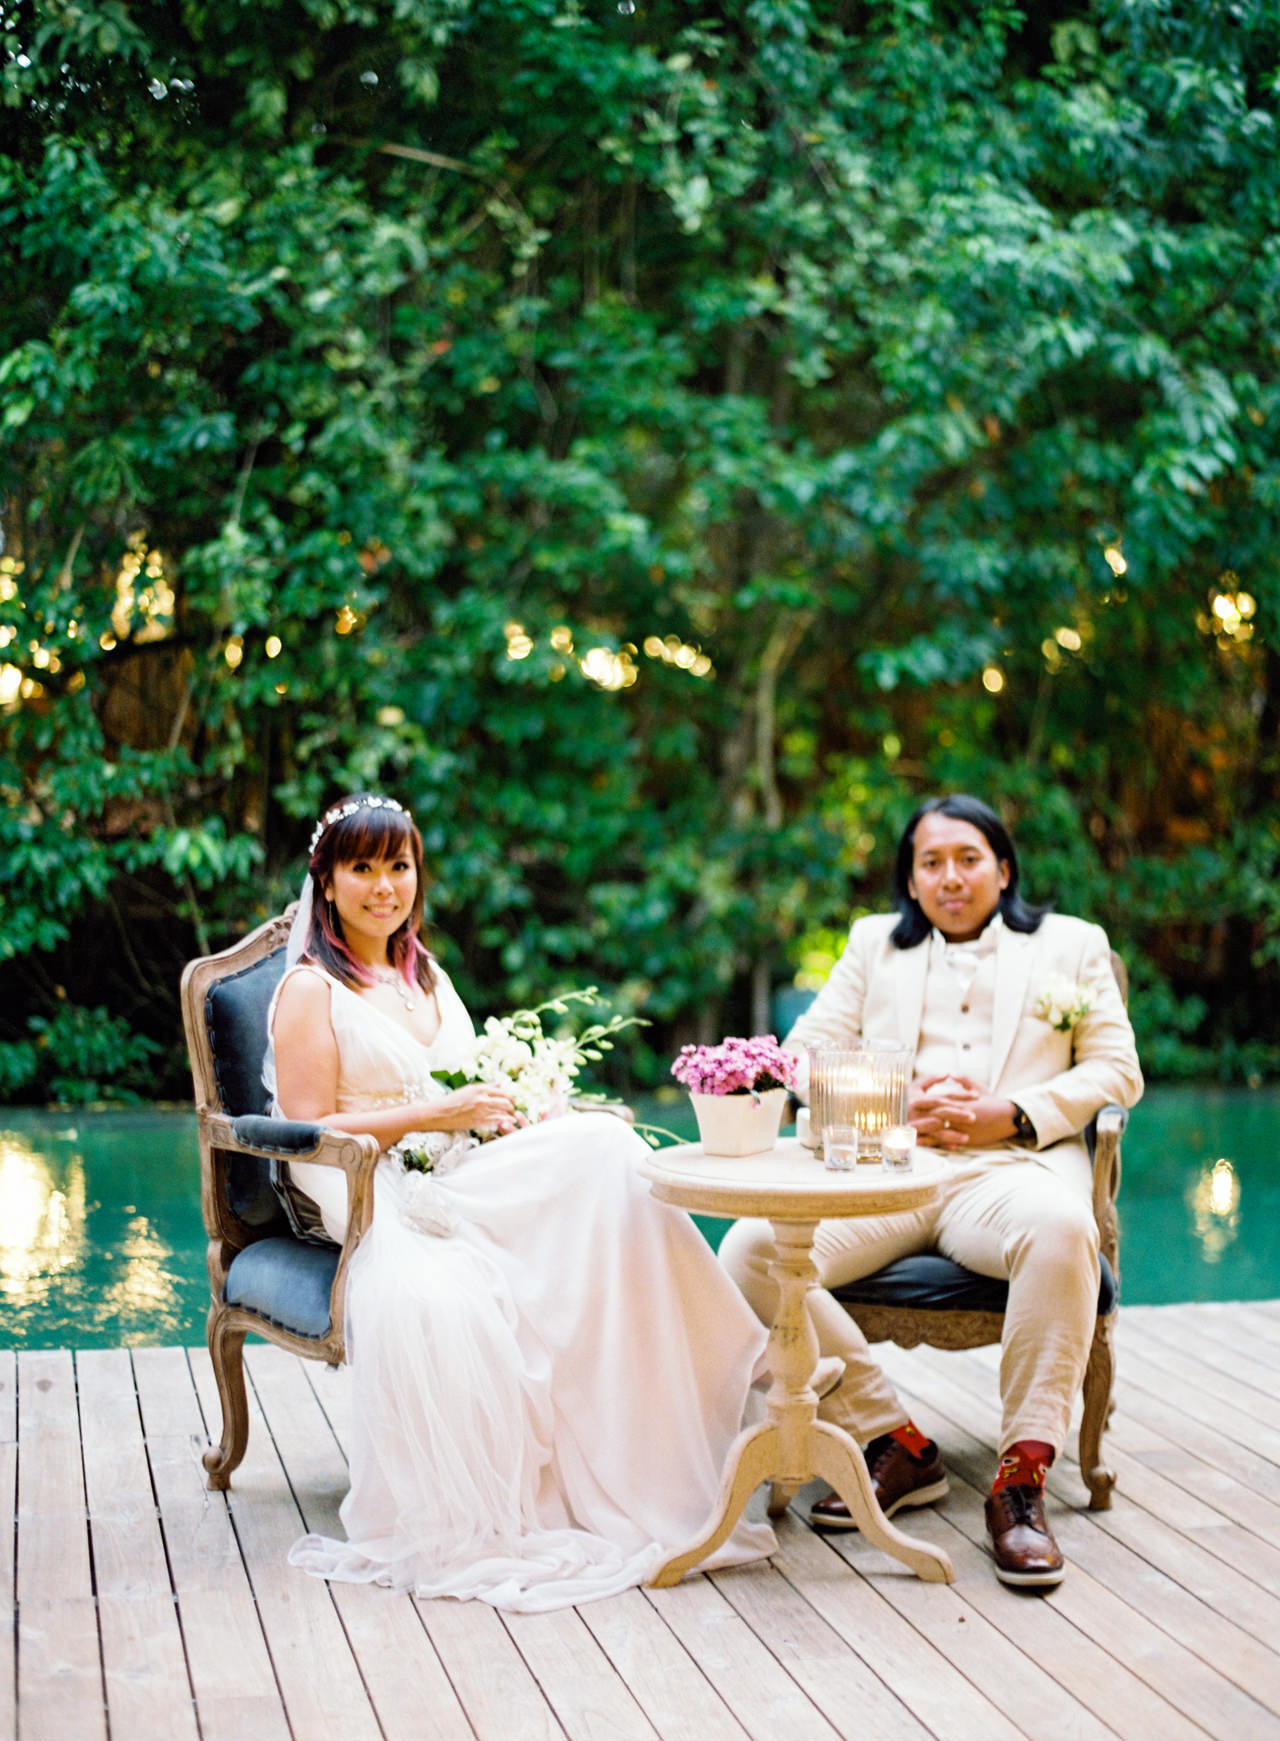 The Wedding of Bayu and Ivony at Gorgeous Bali Wedding Venue 39